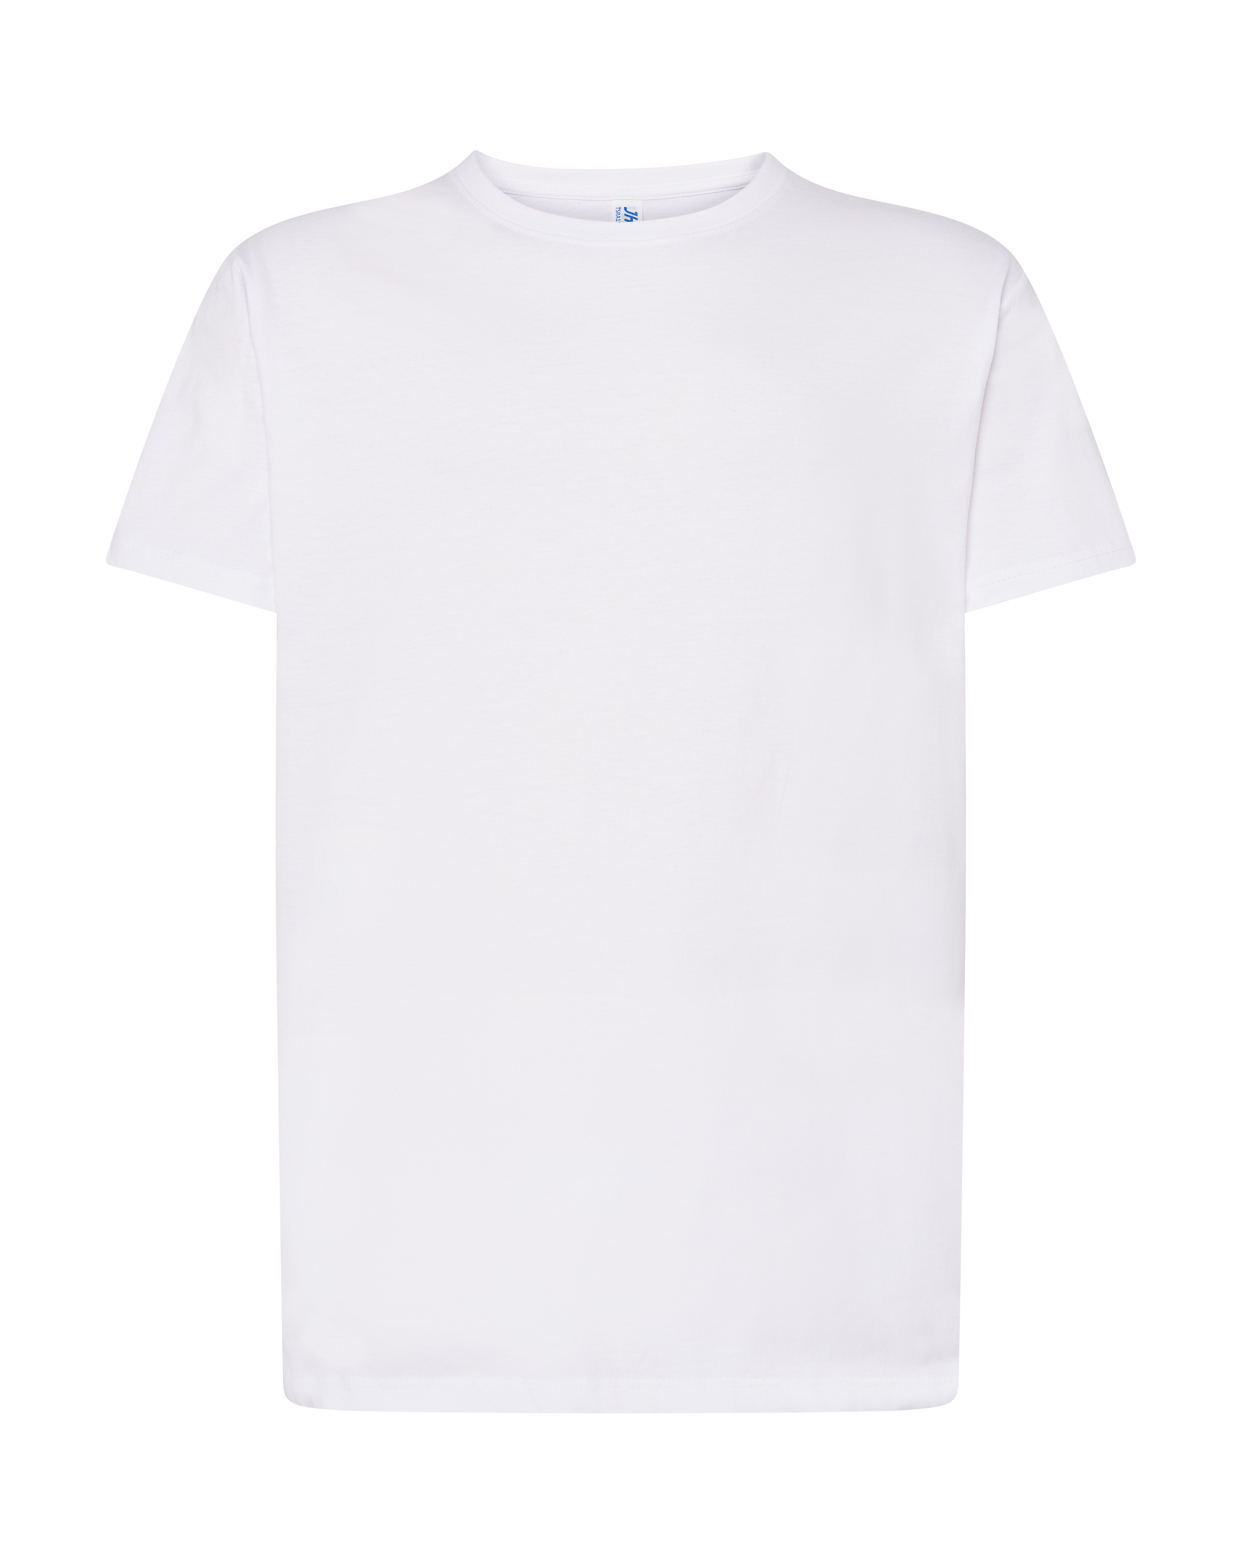 WHITE LONG T-SHIRT - TSRA150WLT